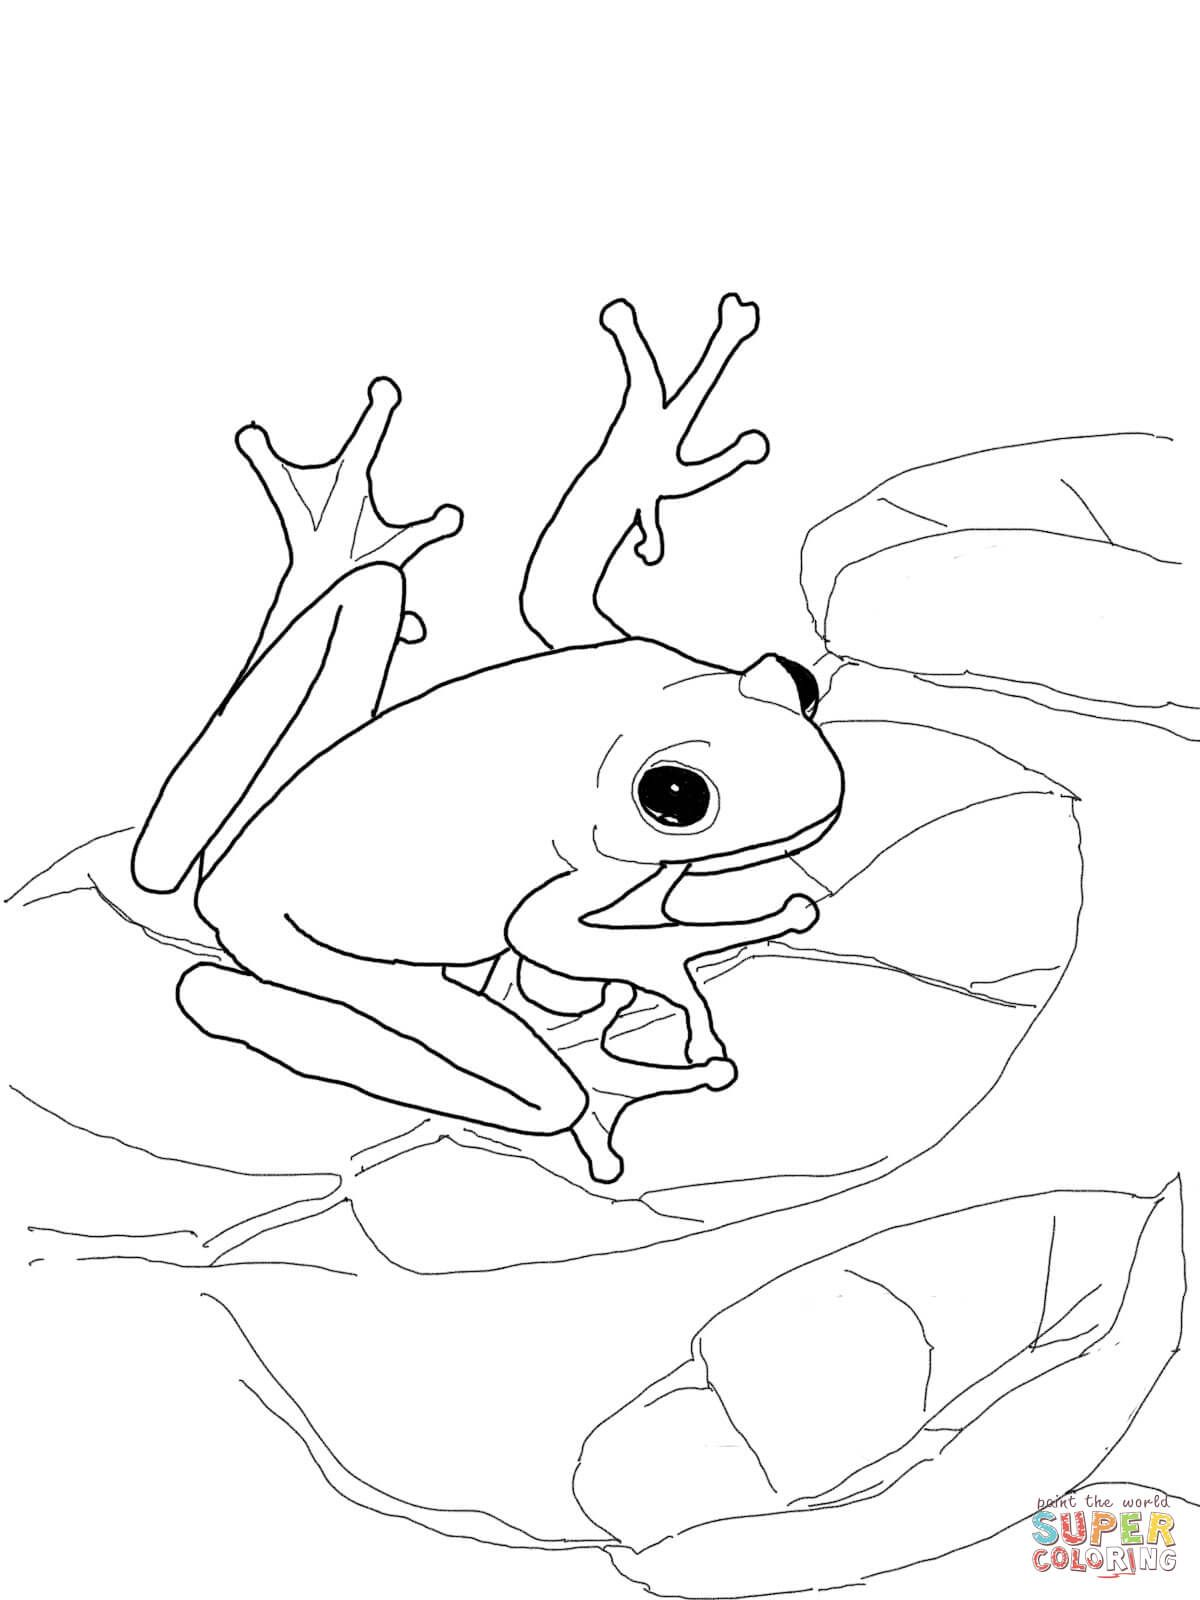 Pin By Jj Dunagan On Bullets | Frog Coloring Pages, Animal